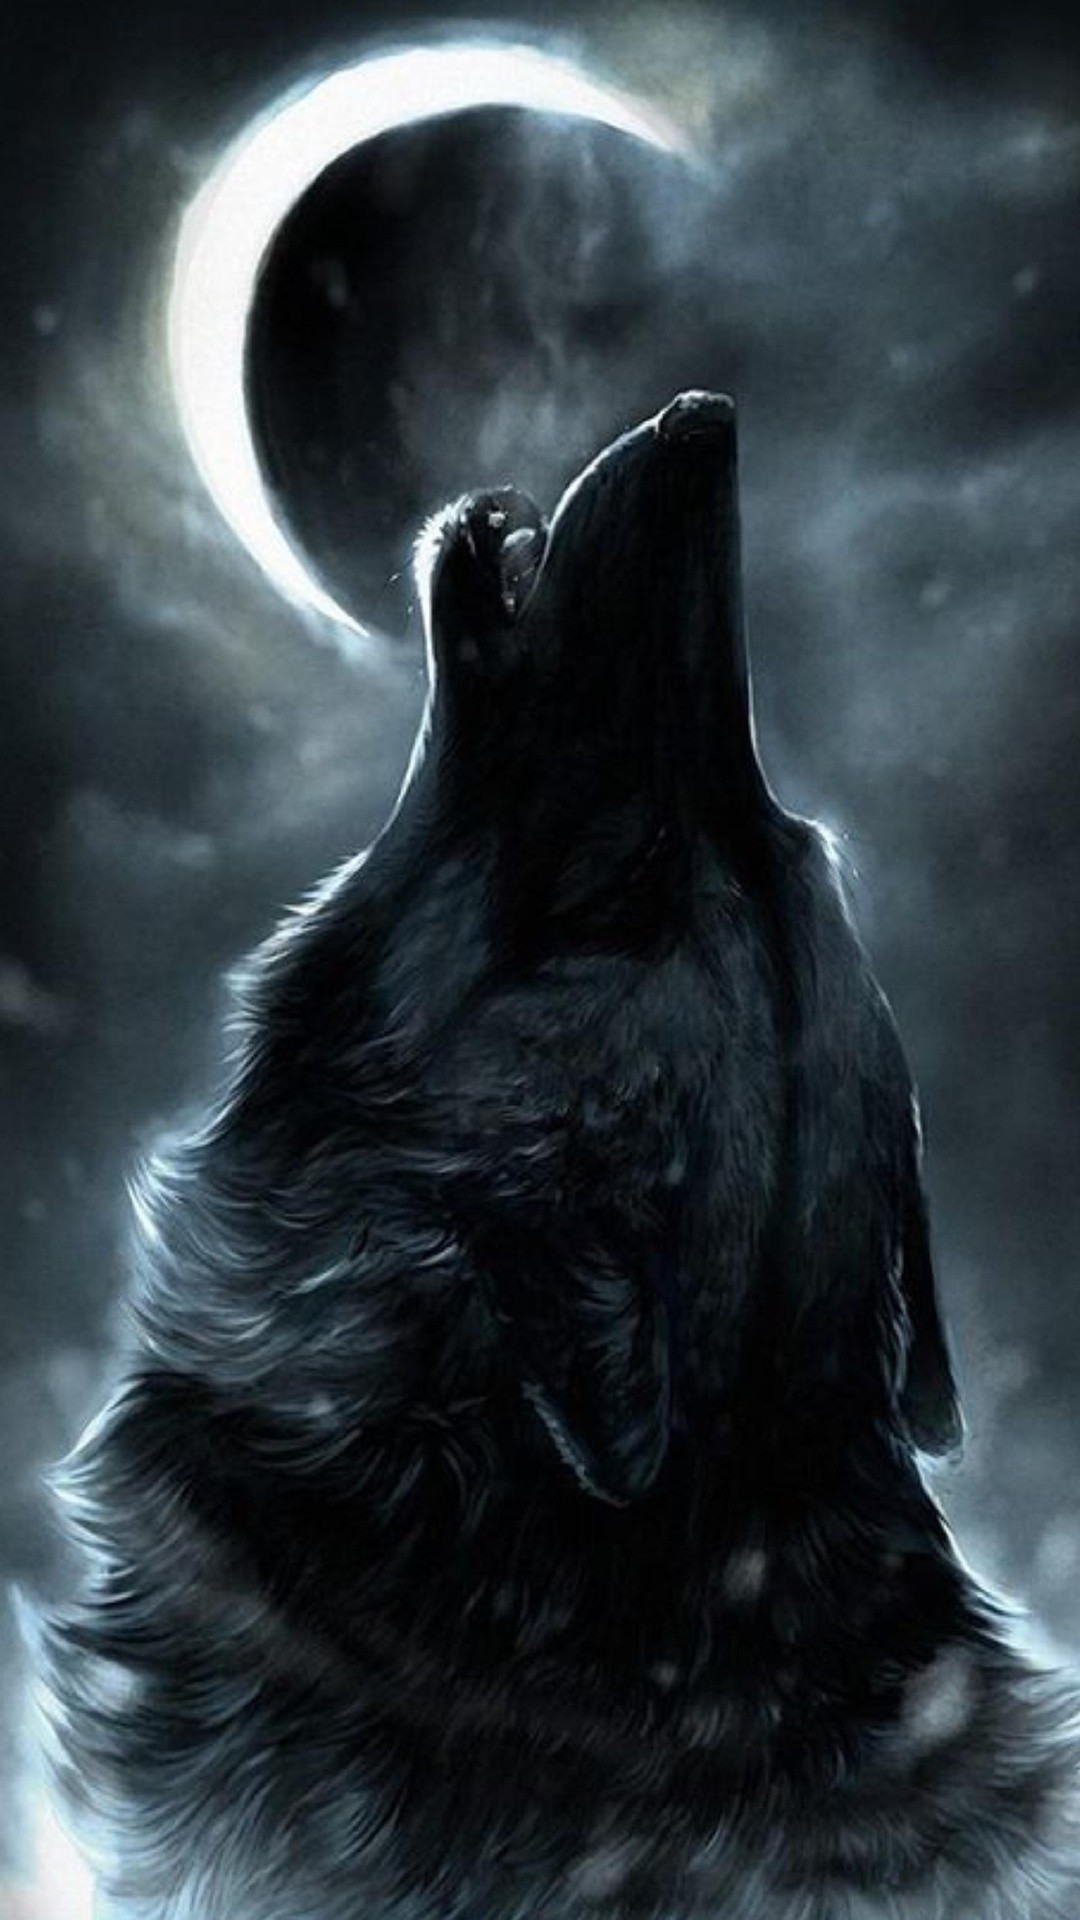 1080x1920 Download Previewhowling Wolf Wallpaper Dark Wolf Howling At The Moon 1080x1920 Wallpaper Teahub Io